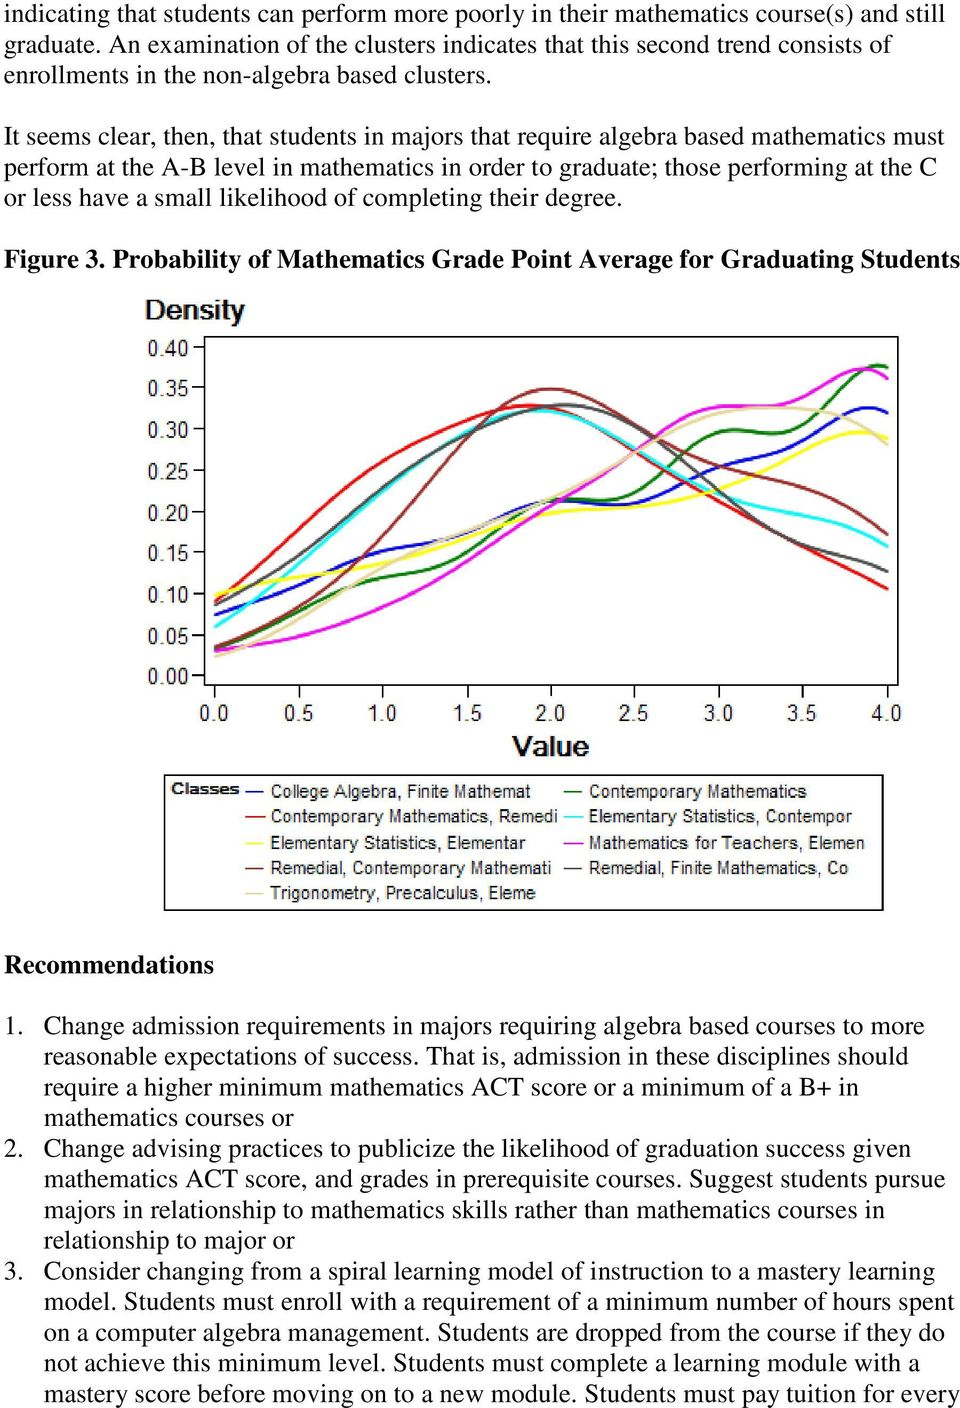 It seems clear, then, that students in majors that require algebra based mathematics must perform at the A-B level in mathematics in order to graduate; those performing at the C or less have a small